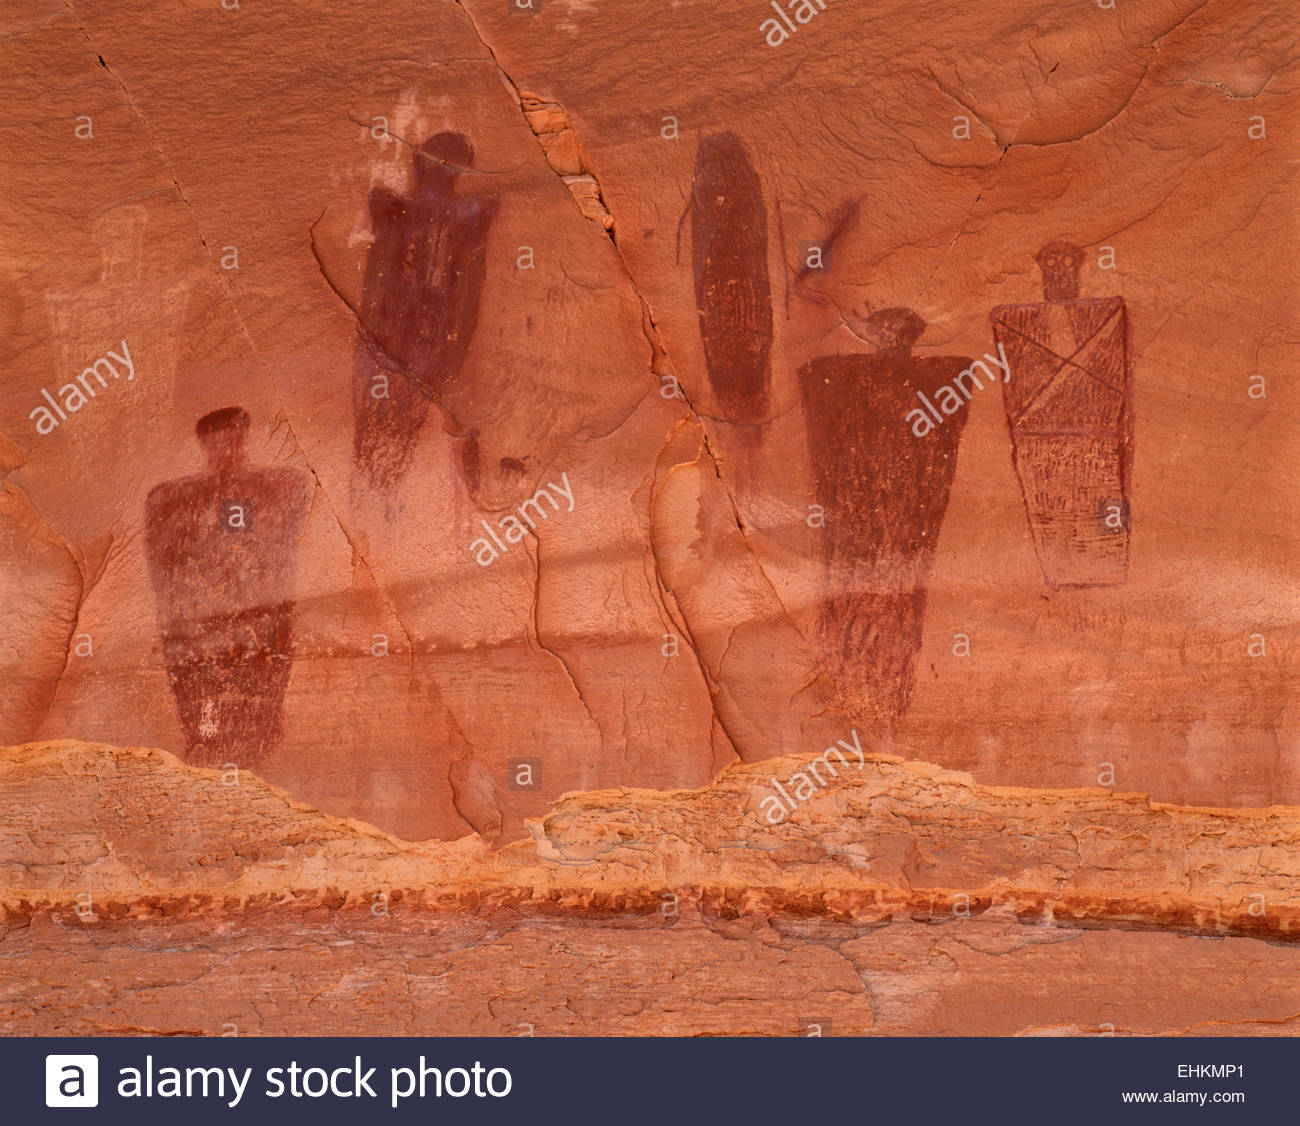 The Great Gallery pictograph panel, Horseshoe Canyon, Barrier Canyon style.  Canyonlands National Park, Utah. - Stock Image